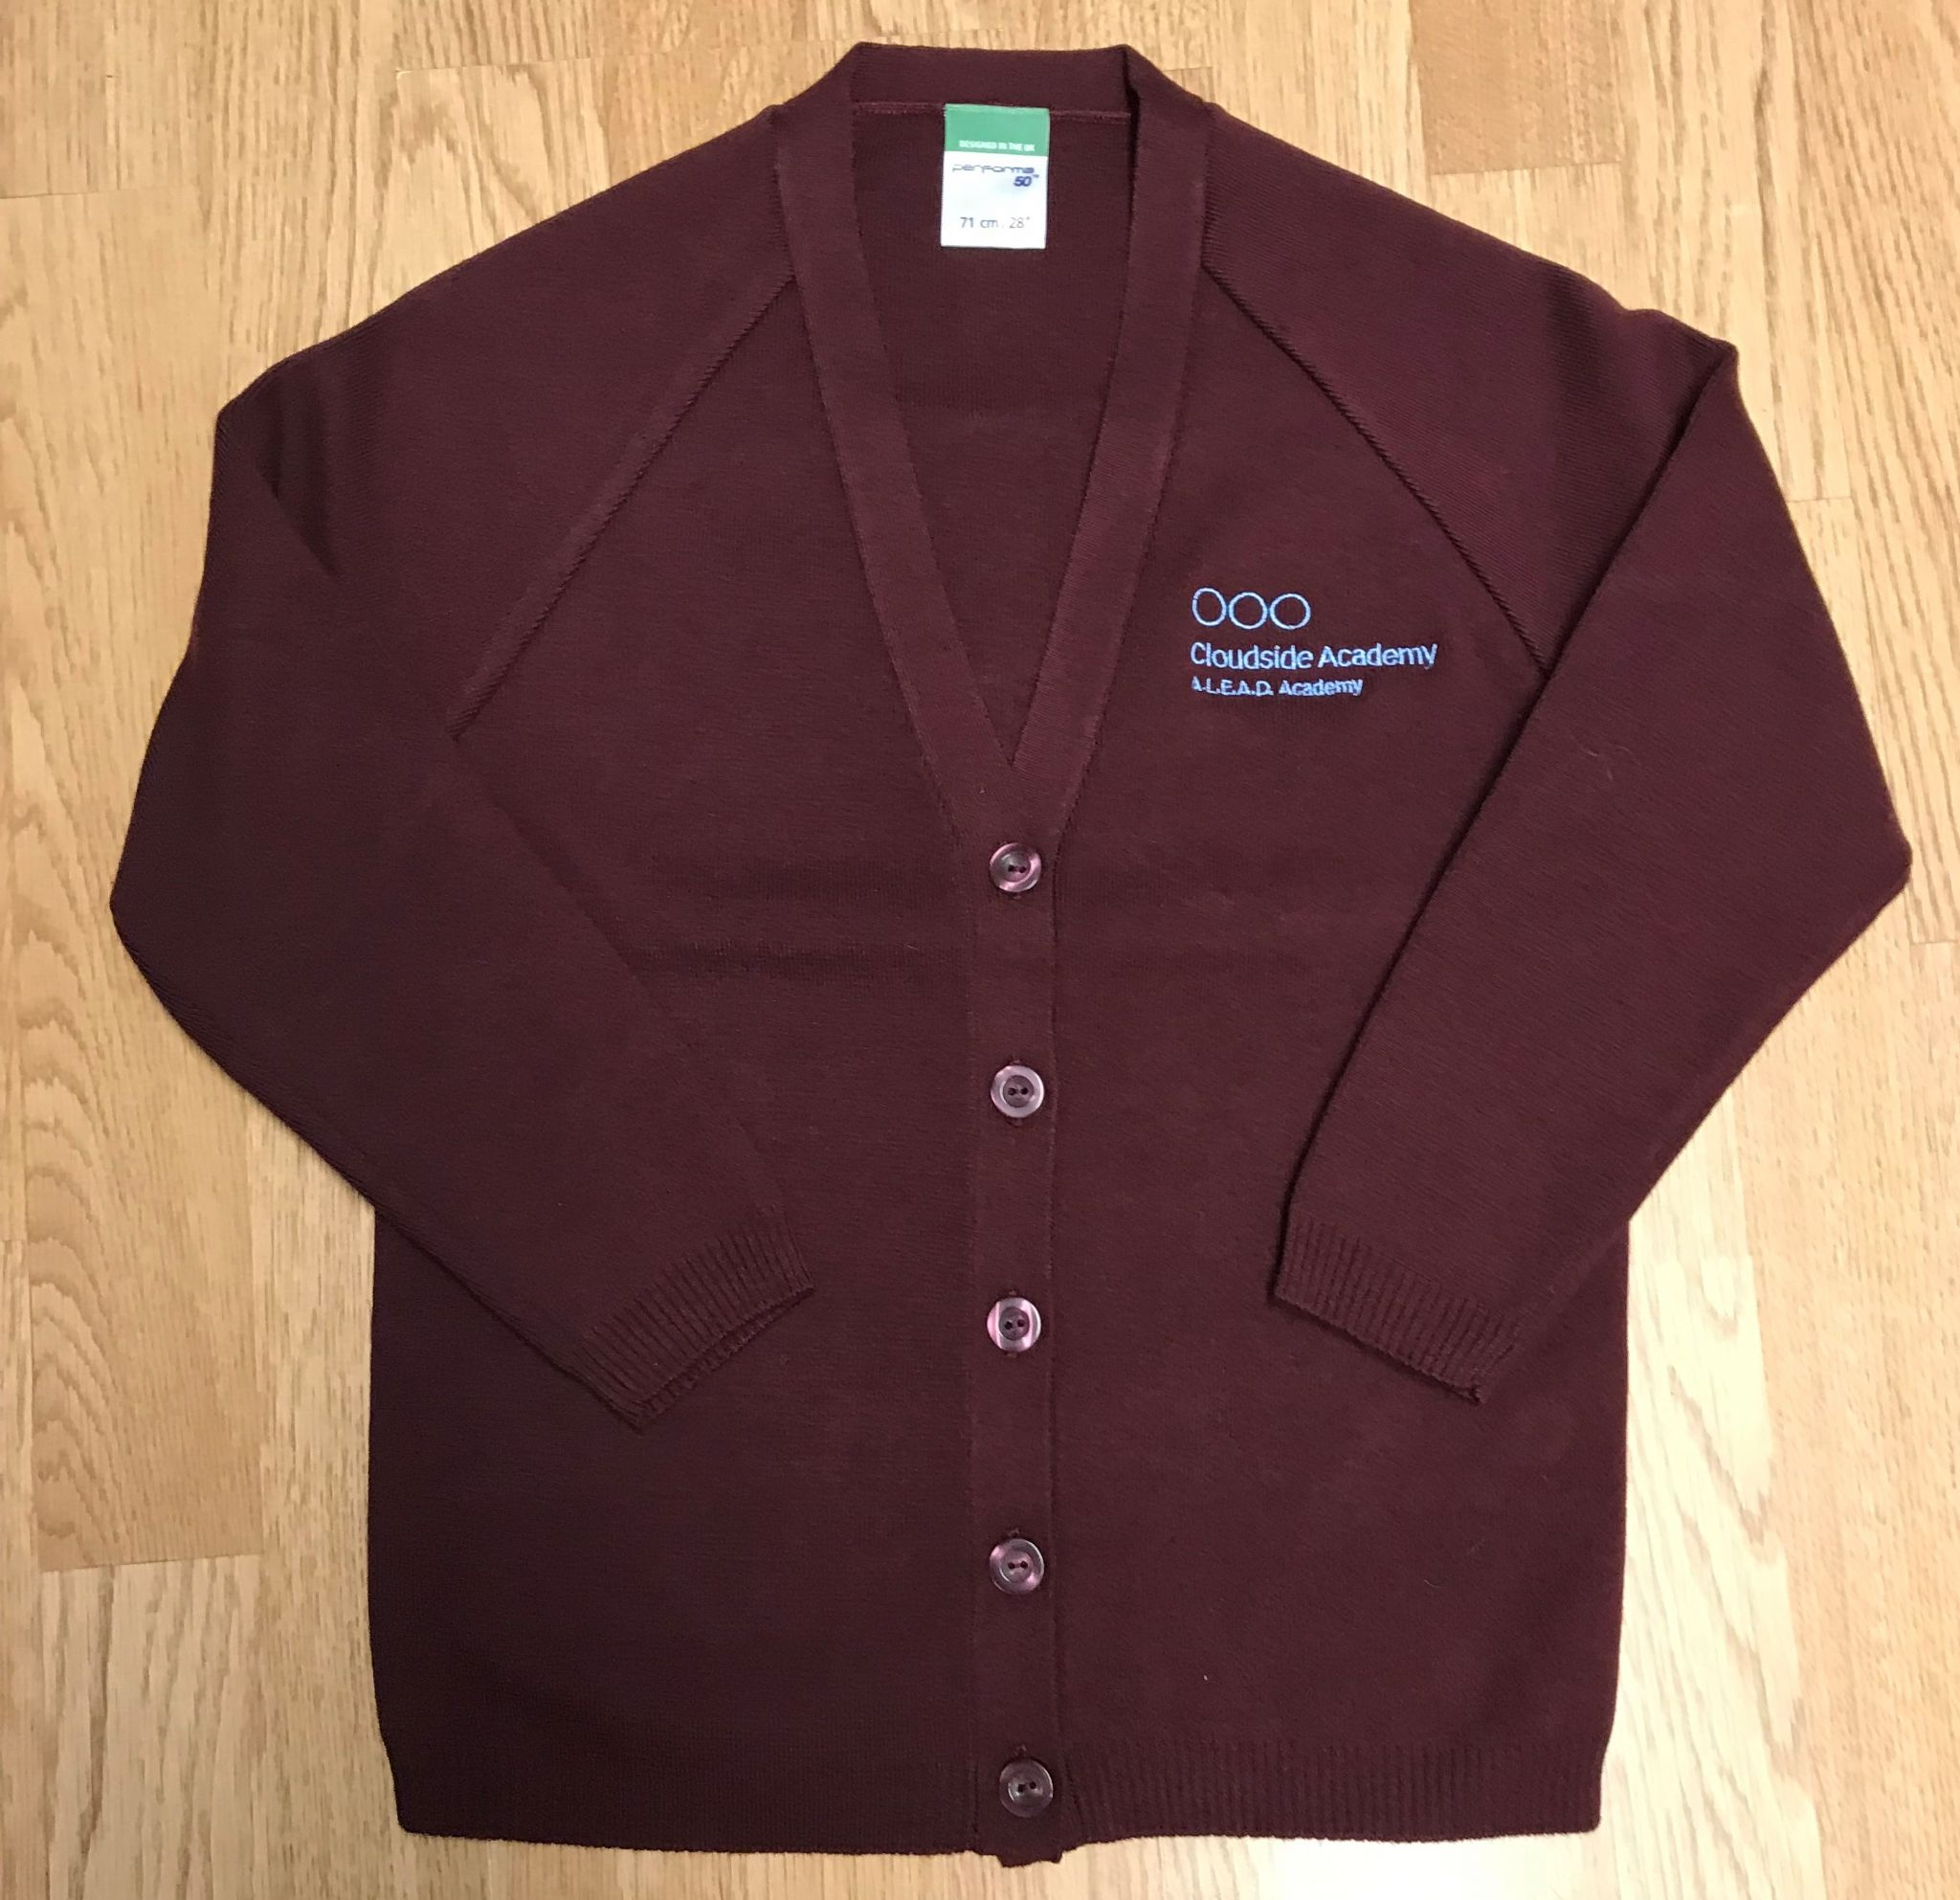 dd700be5a14cd Cloudside Maroon Knitted Cardigan with logo